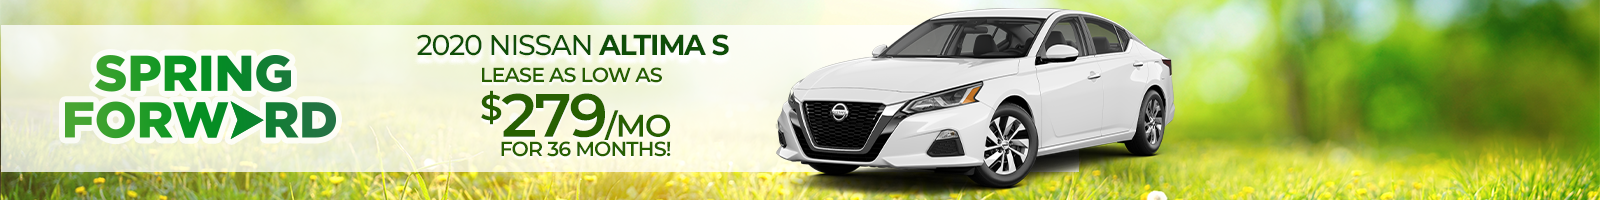 Best Lease on a all-new 2021 Nissan Altima near Clarksville IN